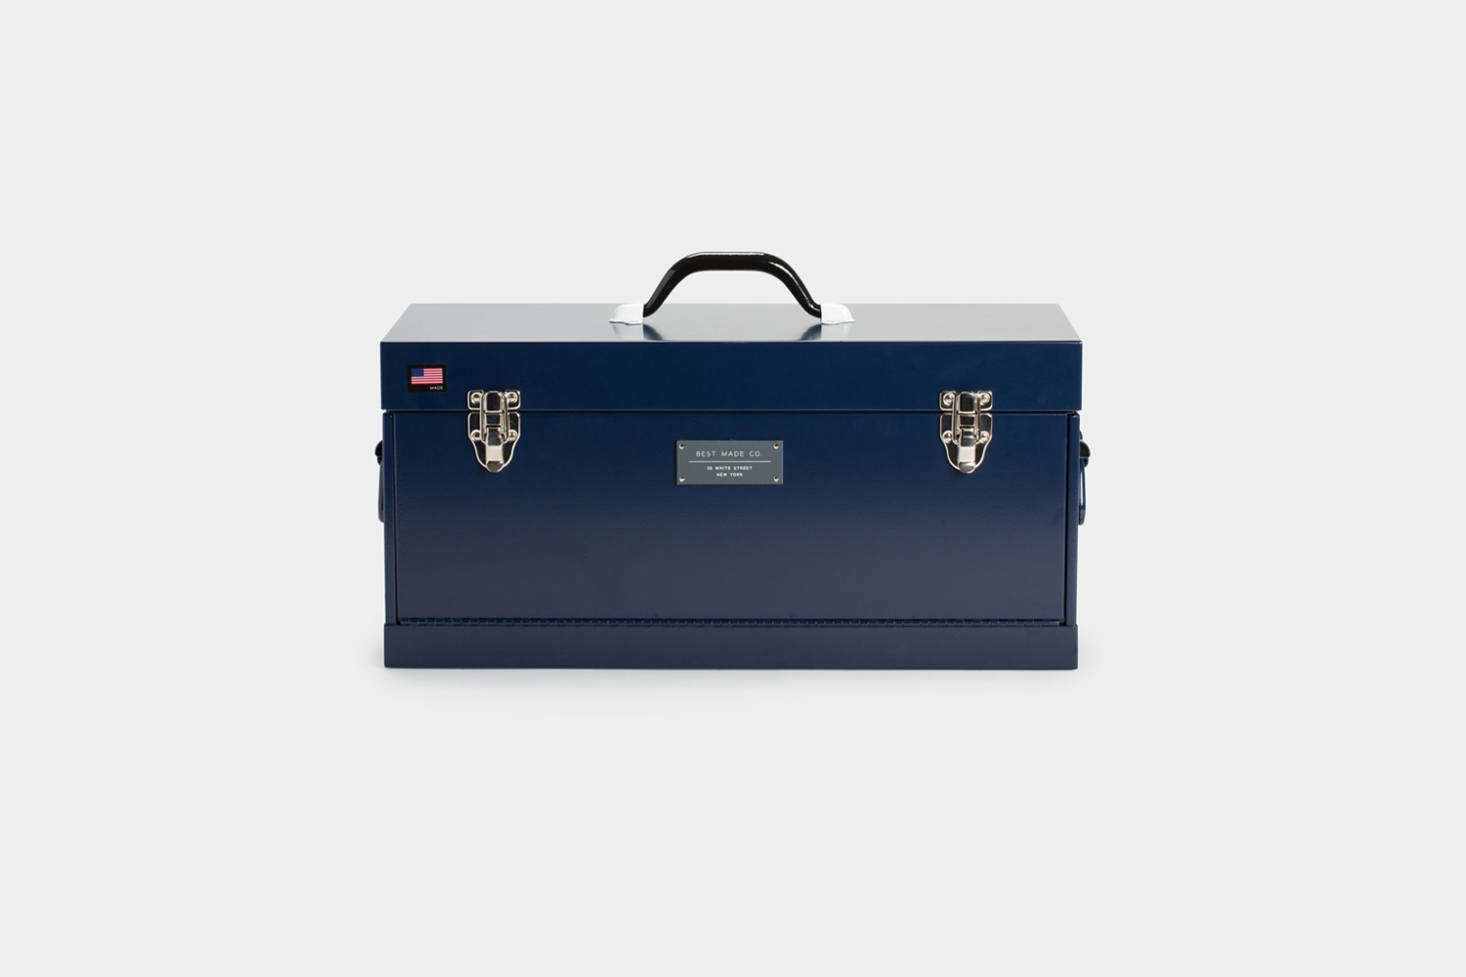 The Best Made Co. Front Loading Toolbox in red, matte black, or navy (shown) is a larger version of the -inch Best Made toolbox featured above. This one is $8 at Best Made Co.